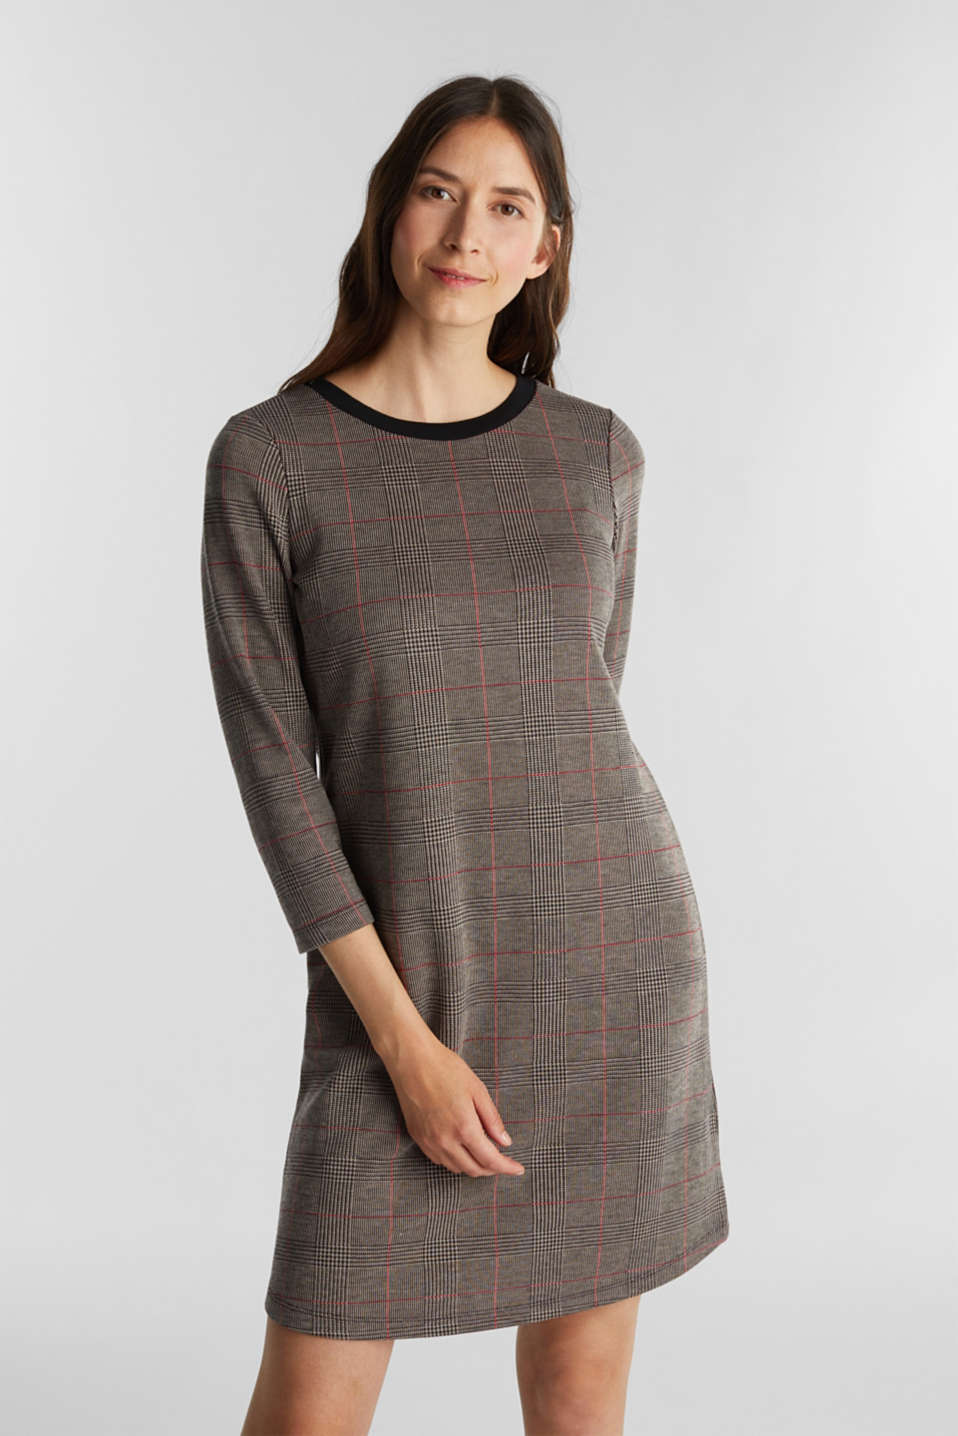 Esprit - Jersey dress with stretch for comfort